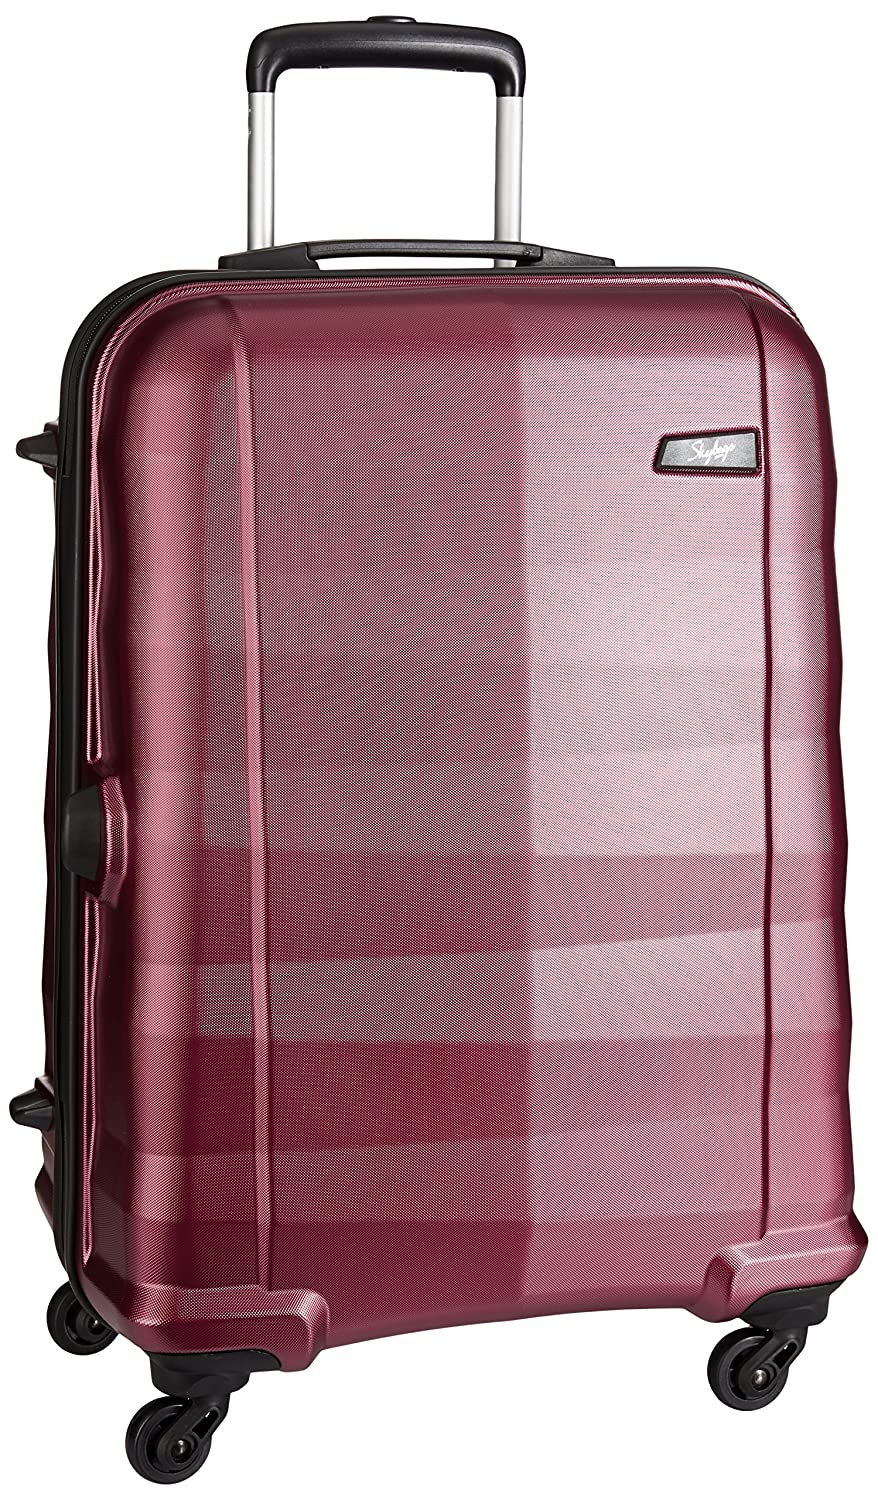 Skybags Auckland 56.1 cms Cherry Red Hardsided Carry-On (AUCKL55EMCD)